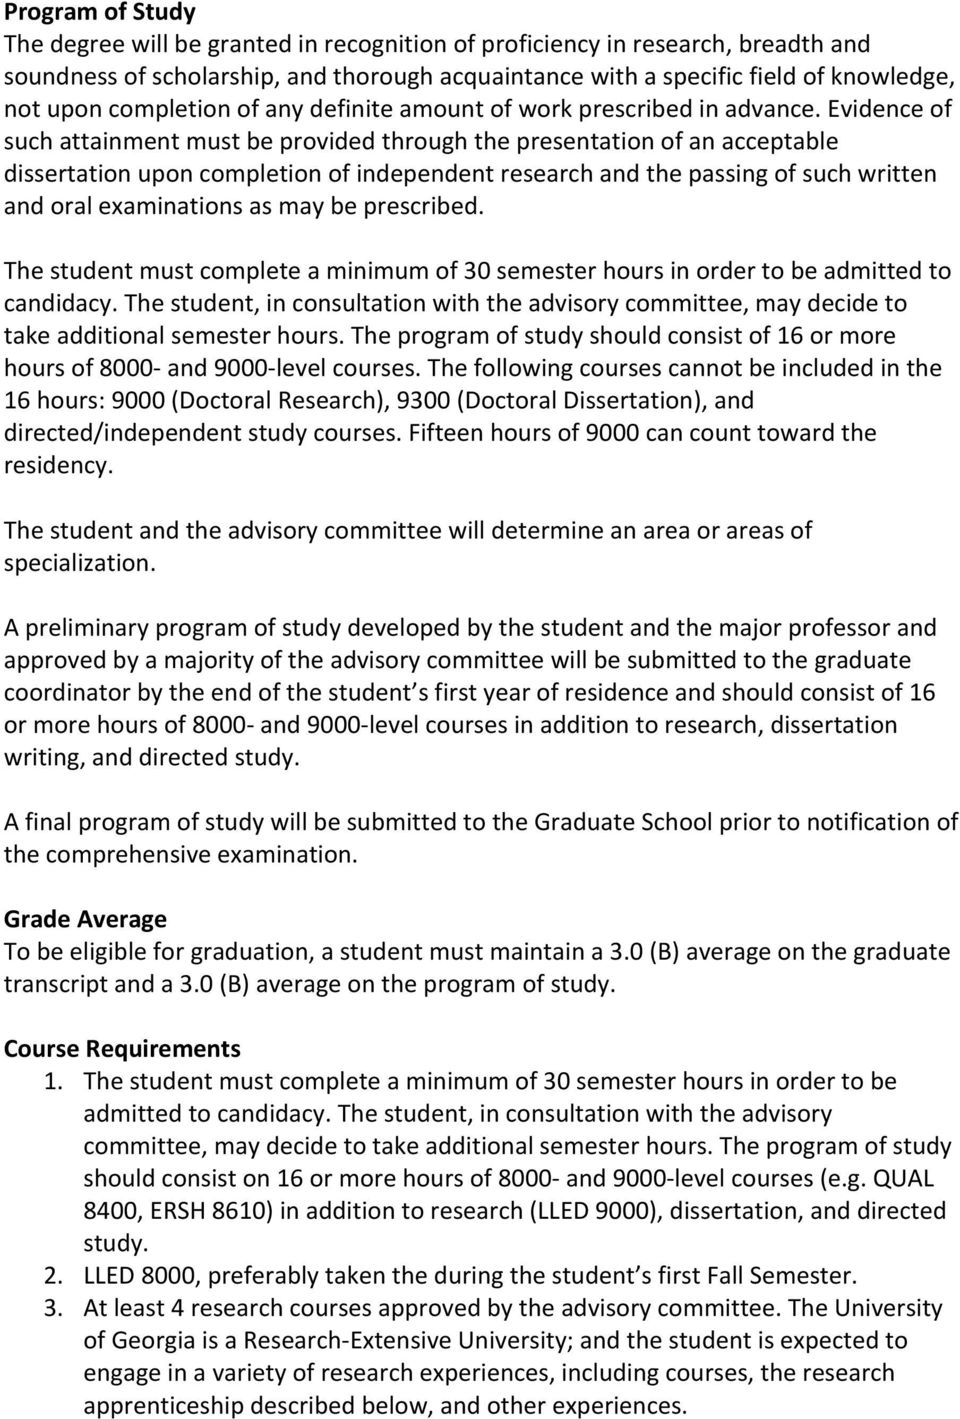 Evidence of such attainment must be provided through the presentation of an acceptable dissertation upon completion of independent research and the passing of such written and oral examinations as